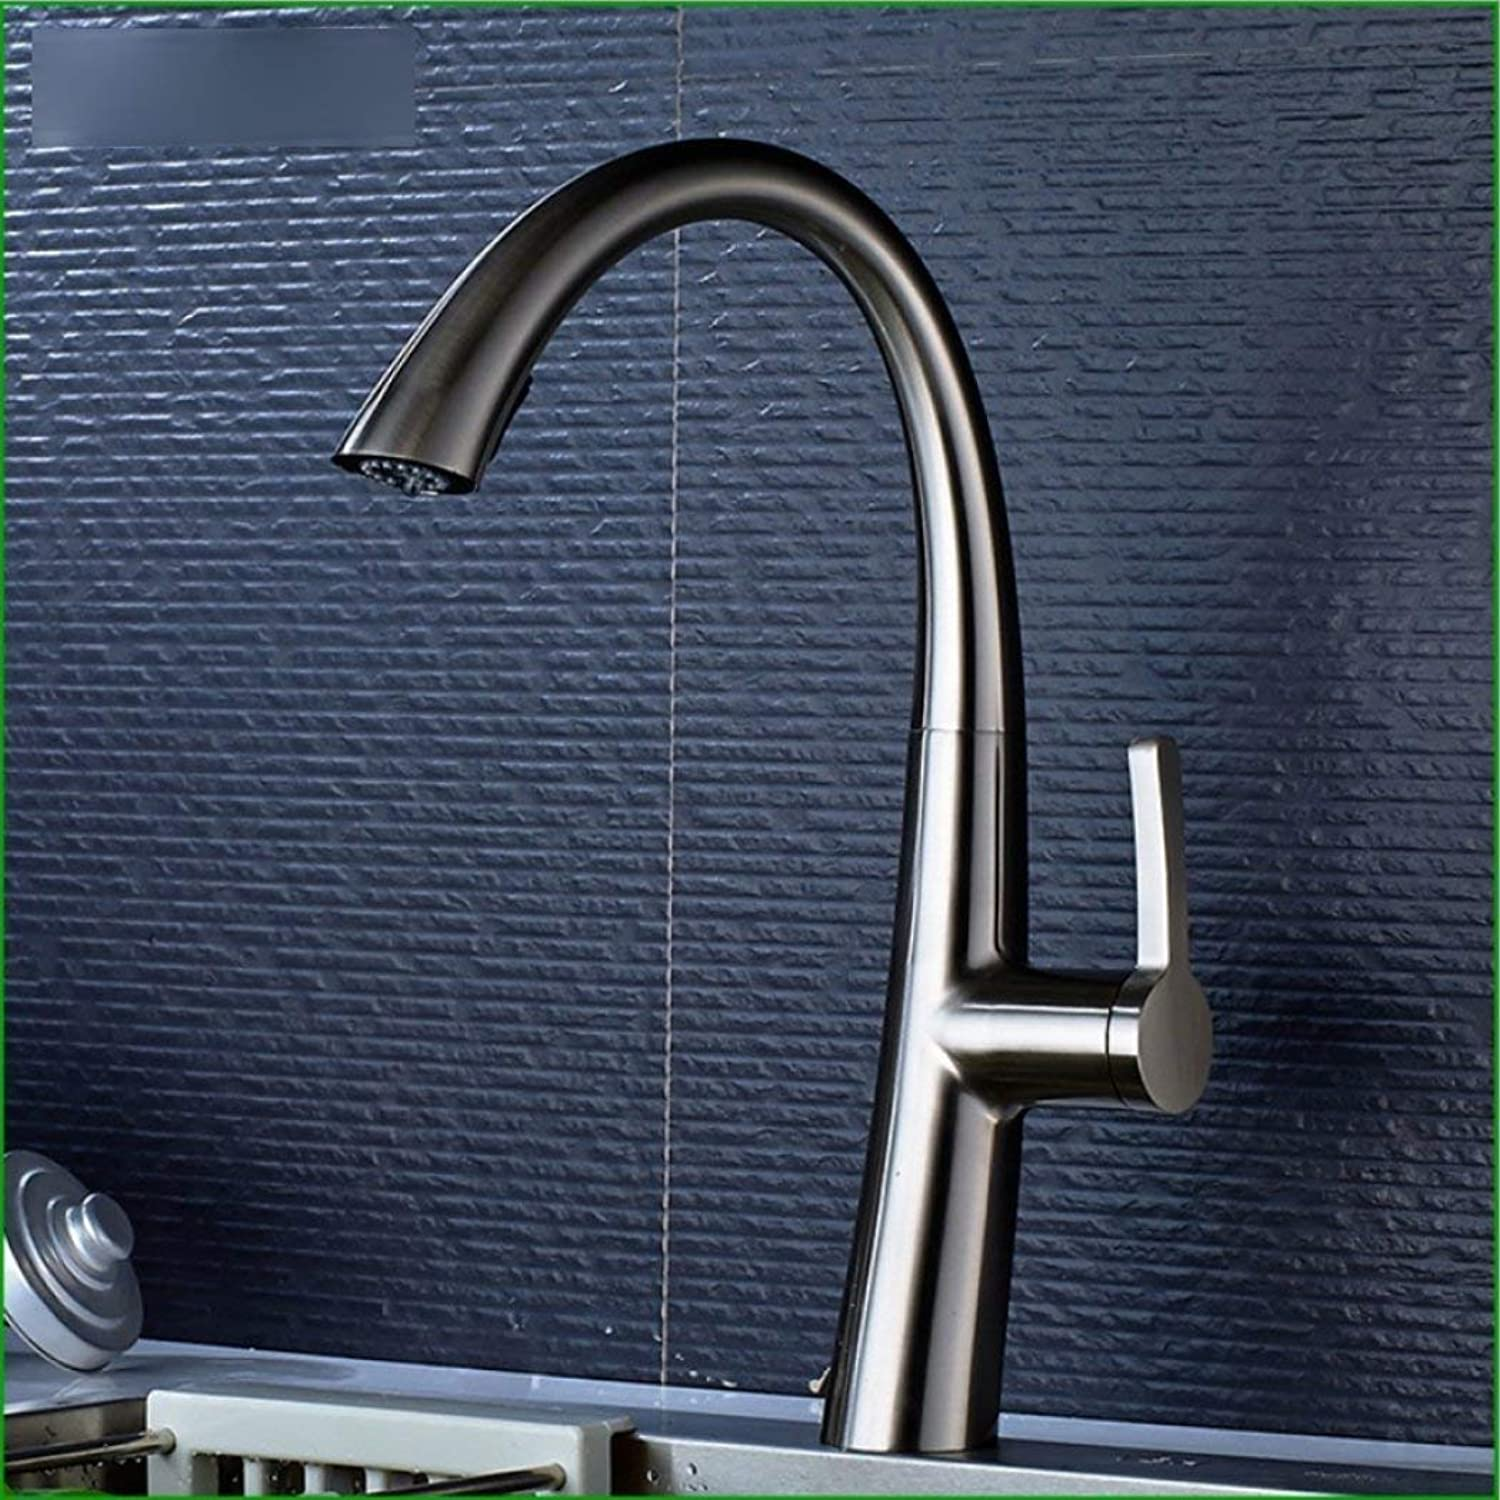 LGSYSYP Bathroom accessories European family kitchen all copper nickel wire brushed sink sink can be redated pull faucet hot and cold water mixed single chain sink faucet towel towel rack